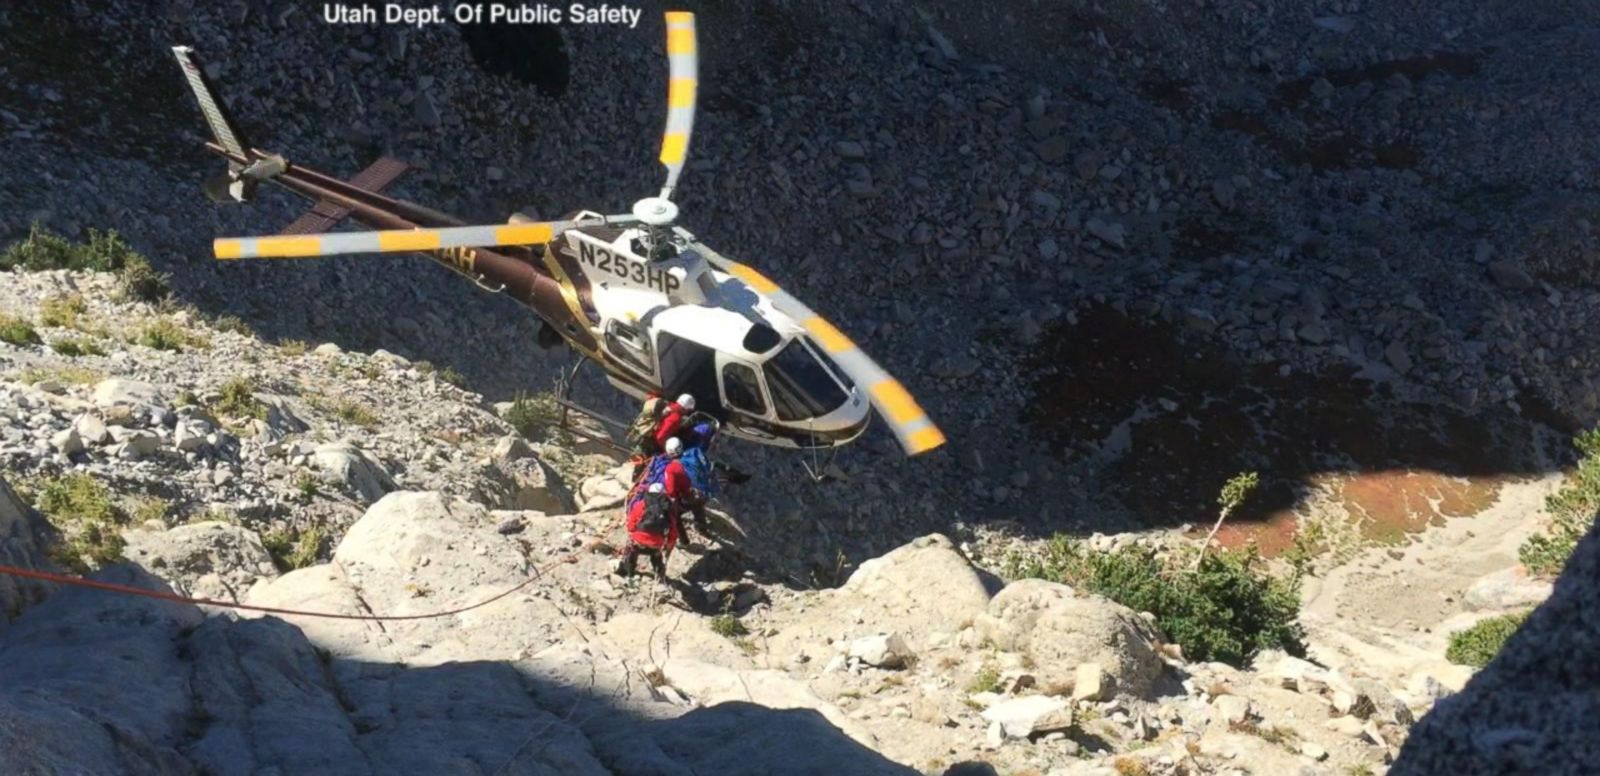 VIDEO: Rescue Chopper Nearly Crashes When Rope Gets Caught in Blade